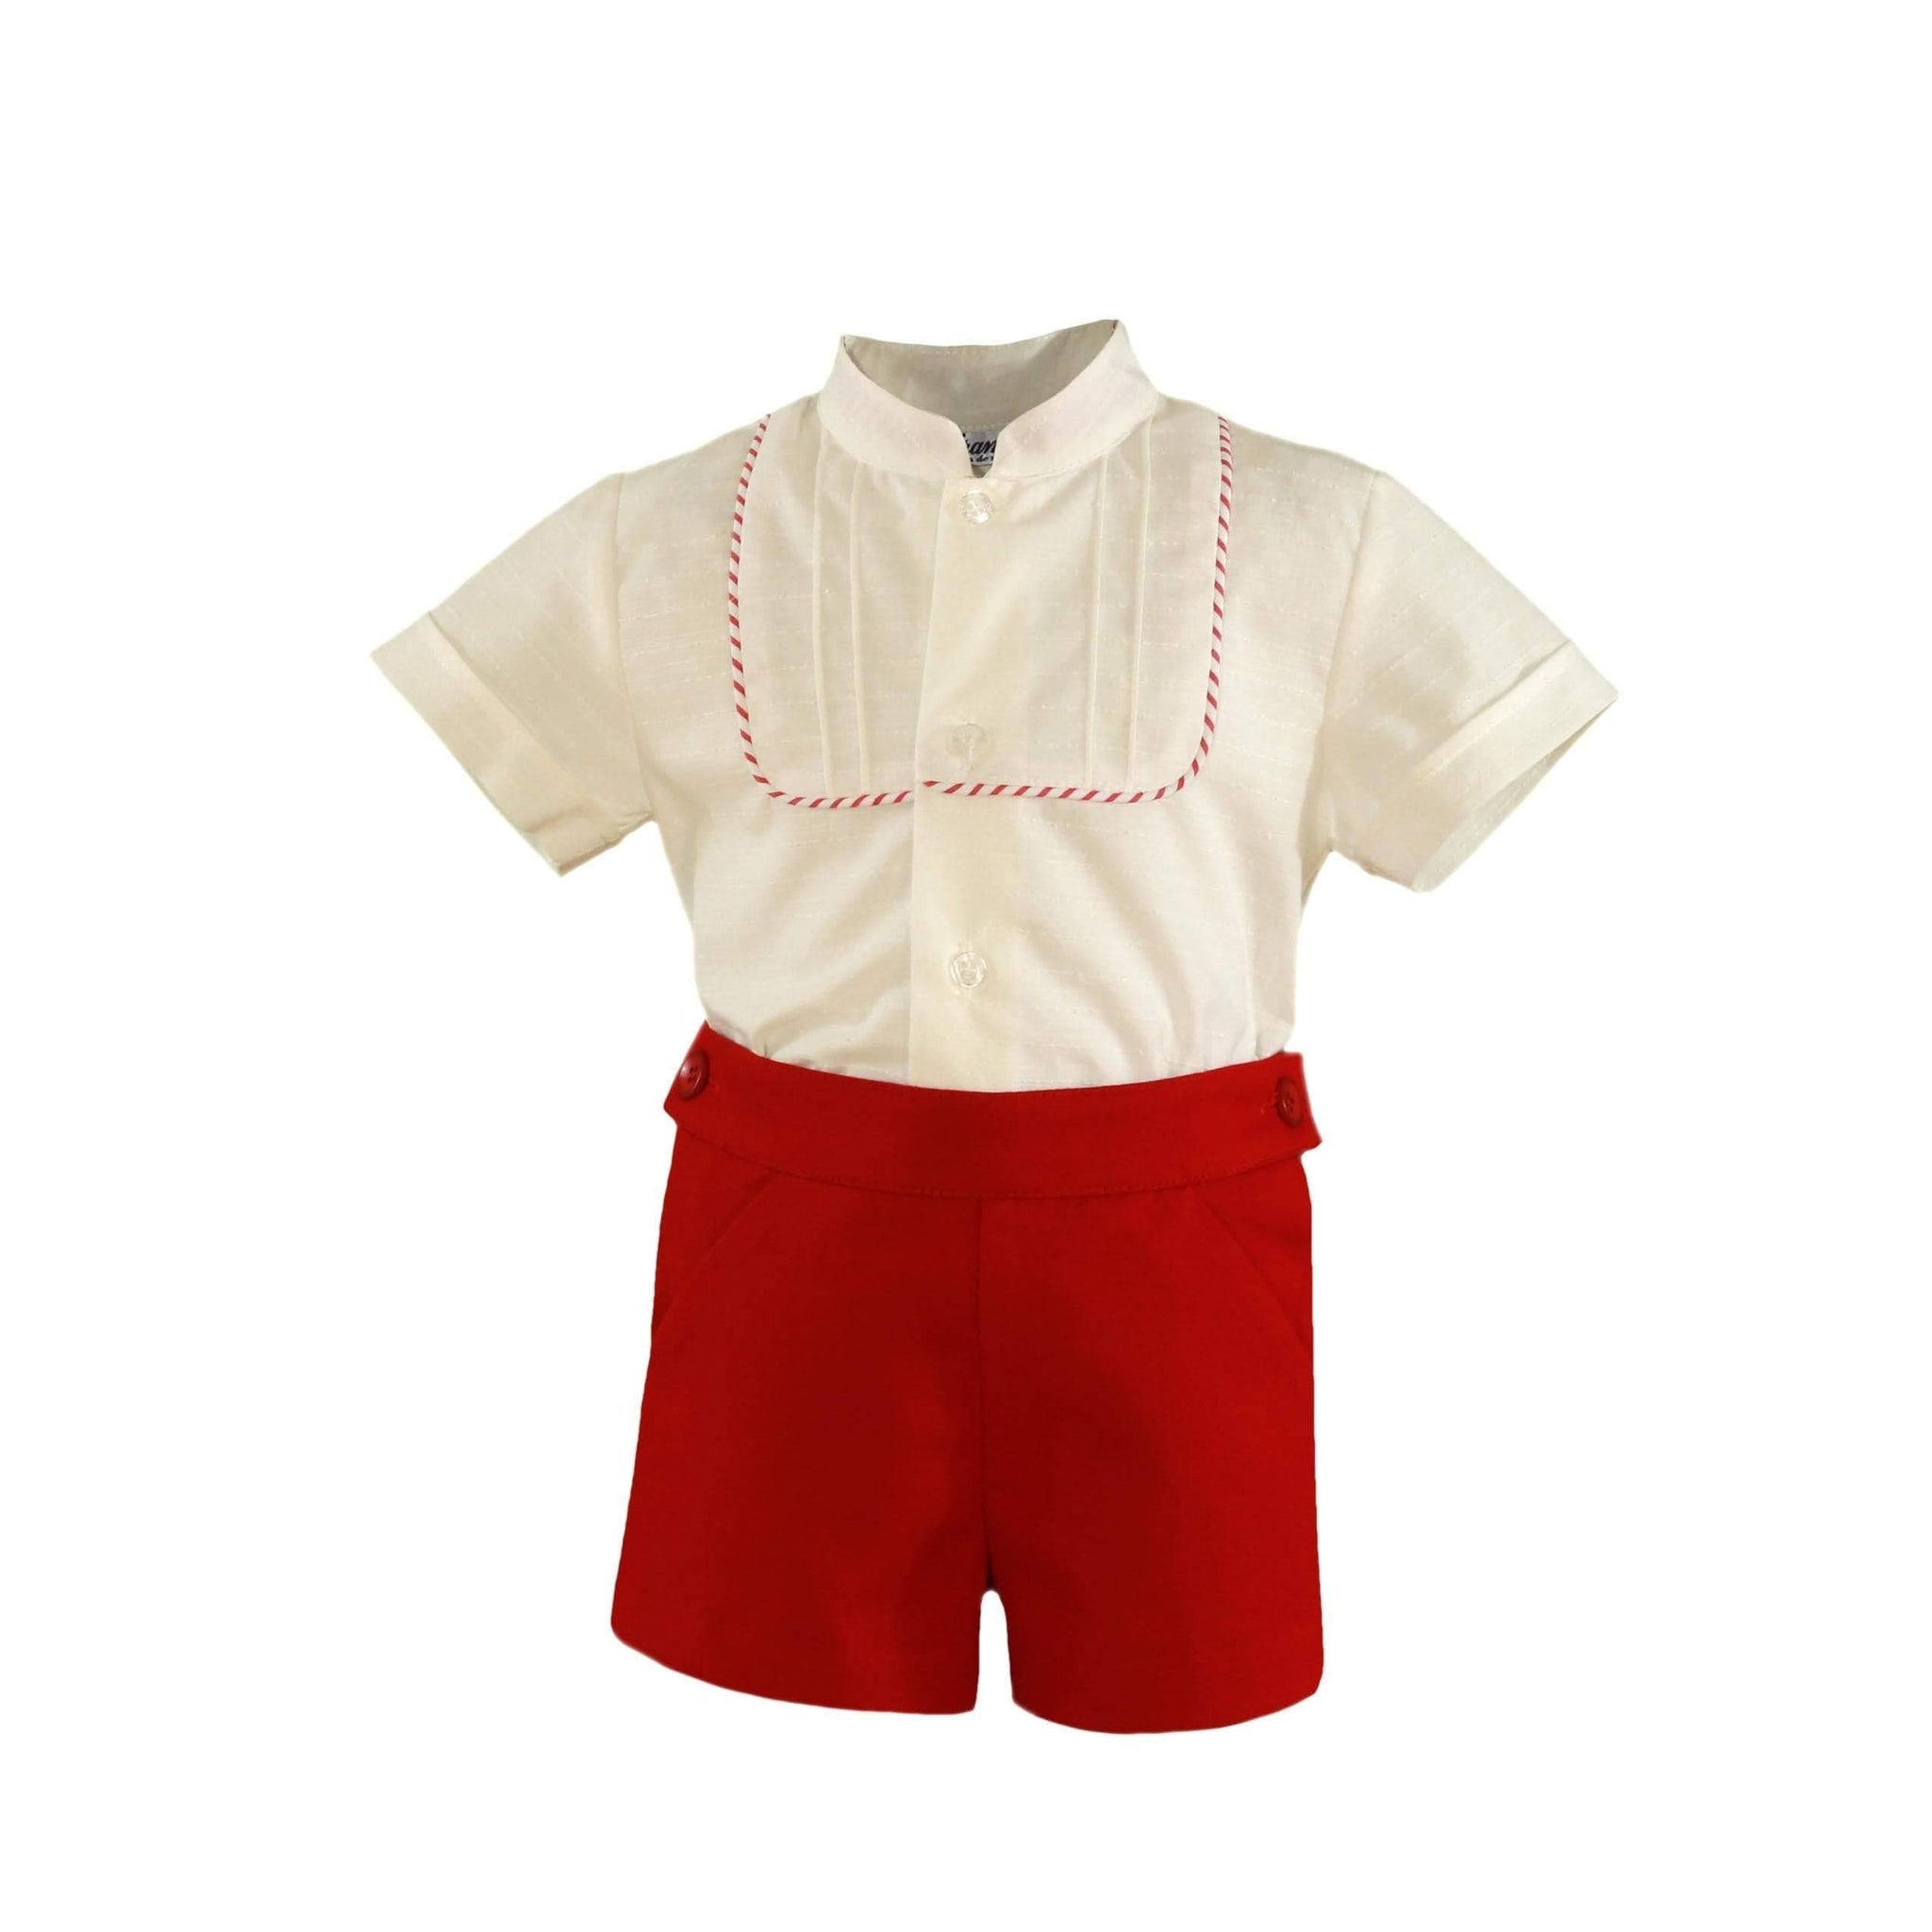 Miranda Baby Boys Miranda SS21 PRE-ORDER -  Baby Boys Red Shorts with Matching Cream Shirt 152-23